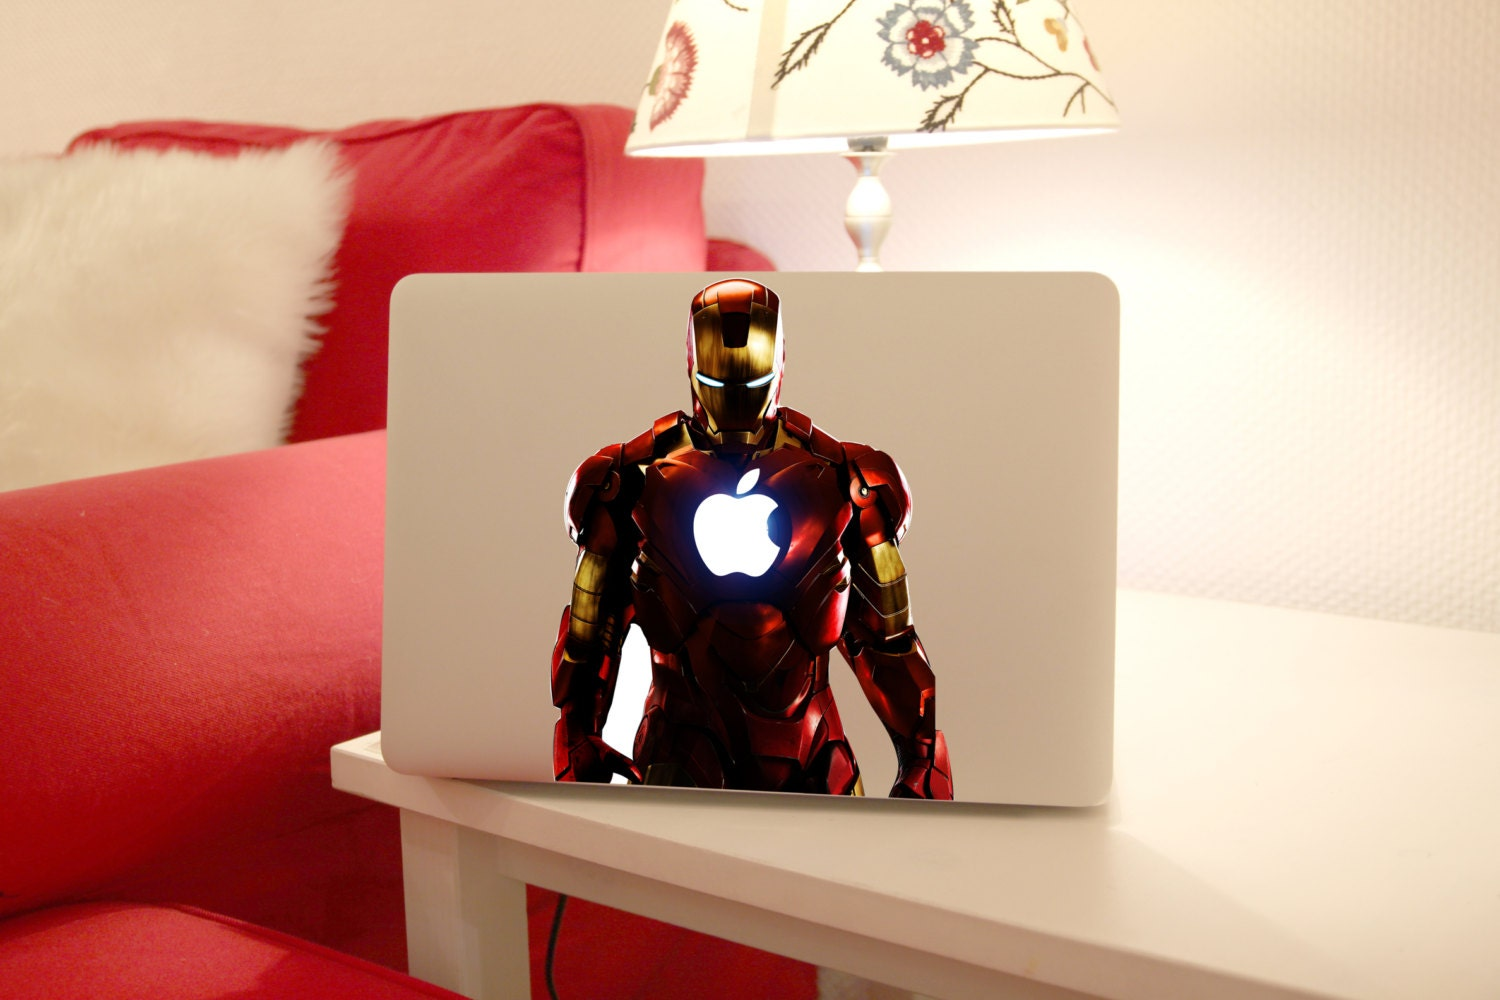 Macbook Apple Stickers Decal Decals Macbook Decals Stickers